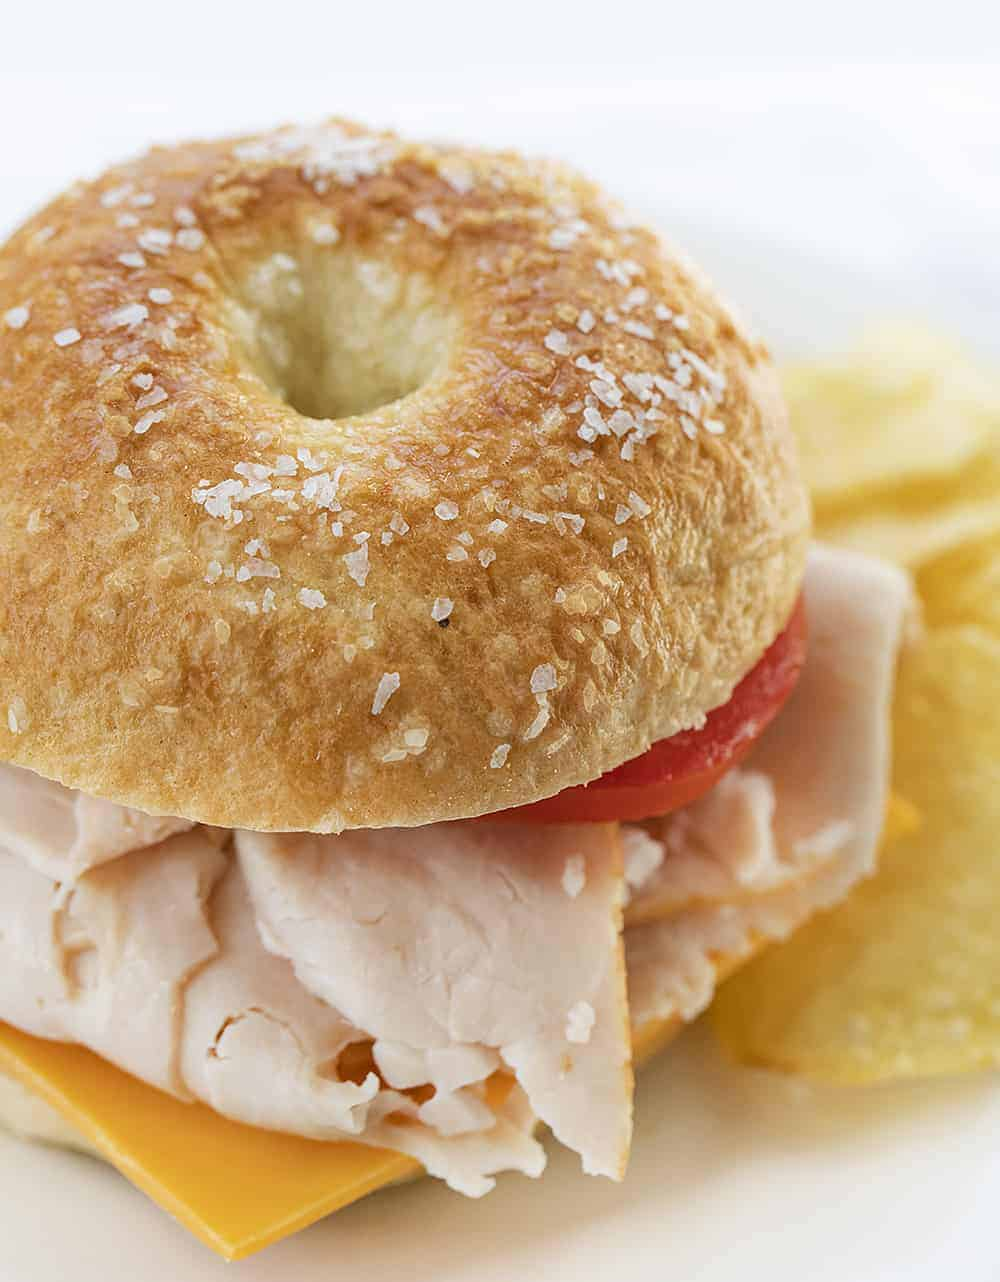 Salt Bagel Sandwich with turkey and tomato next to Chips on white plate